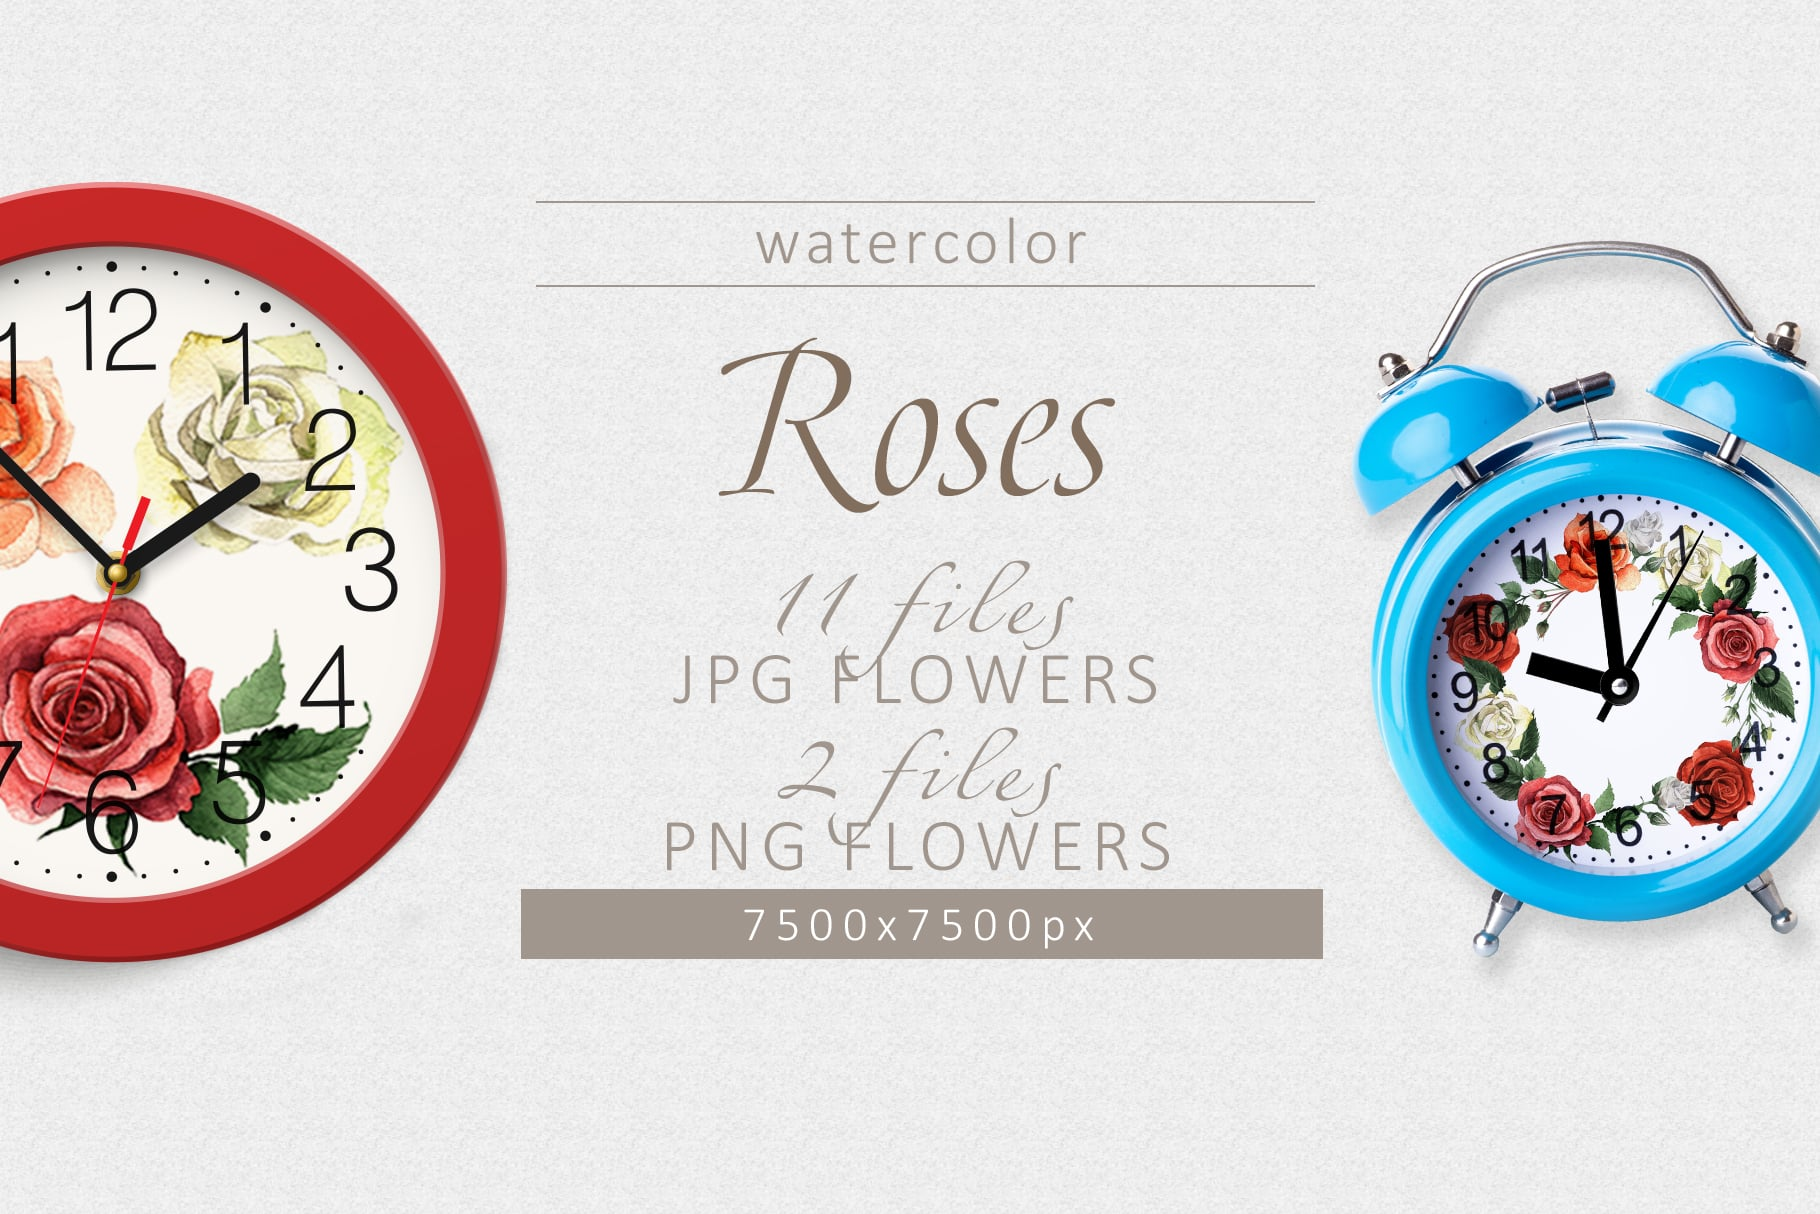 Colorful roses PNG watercolor set - cover 4